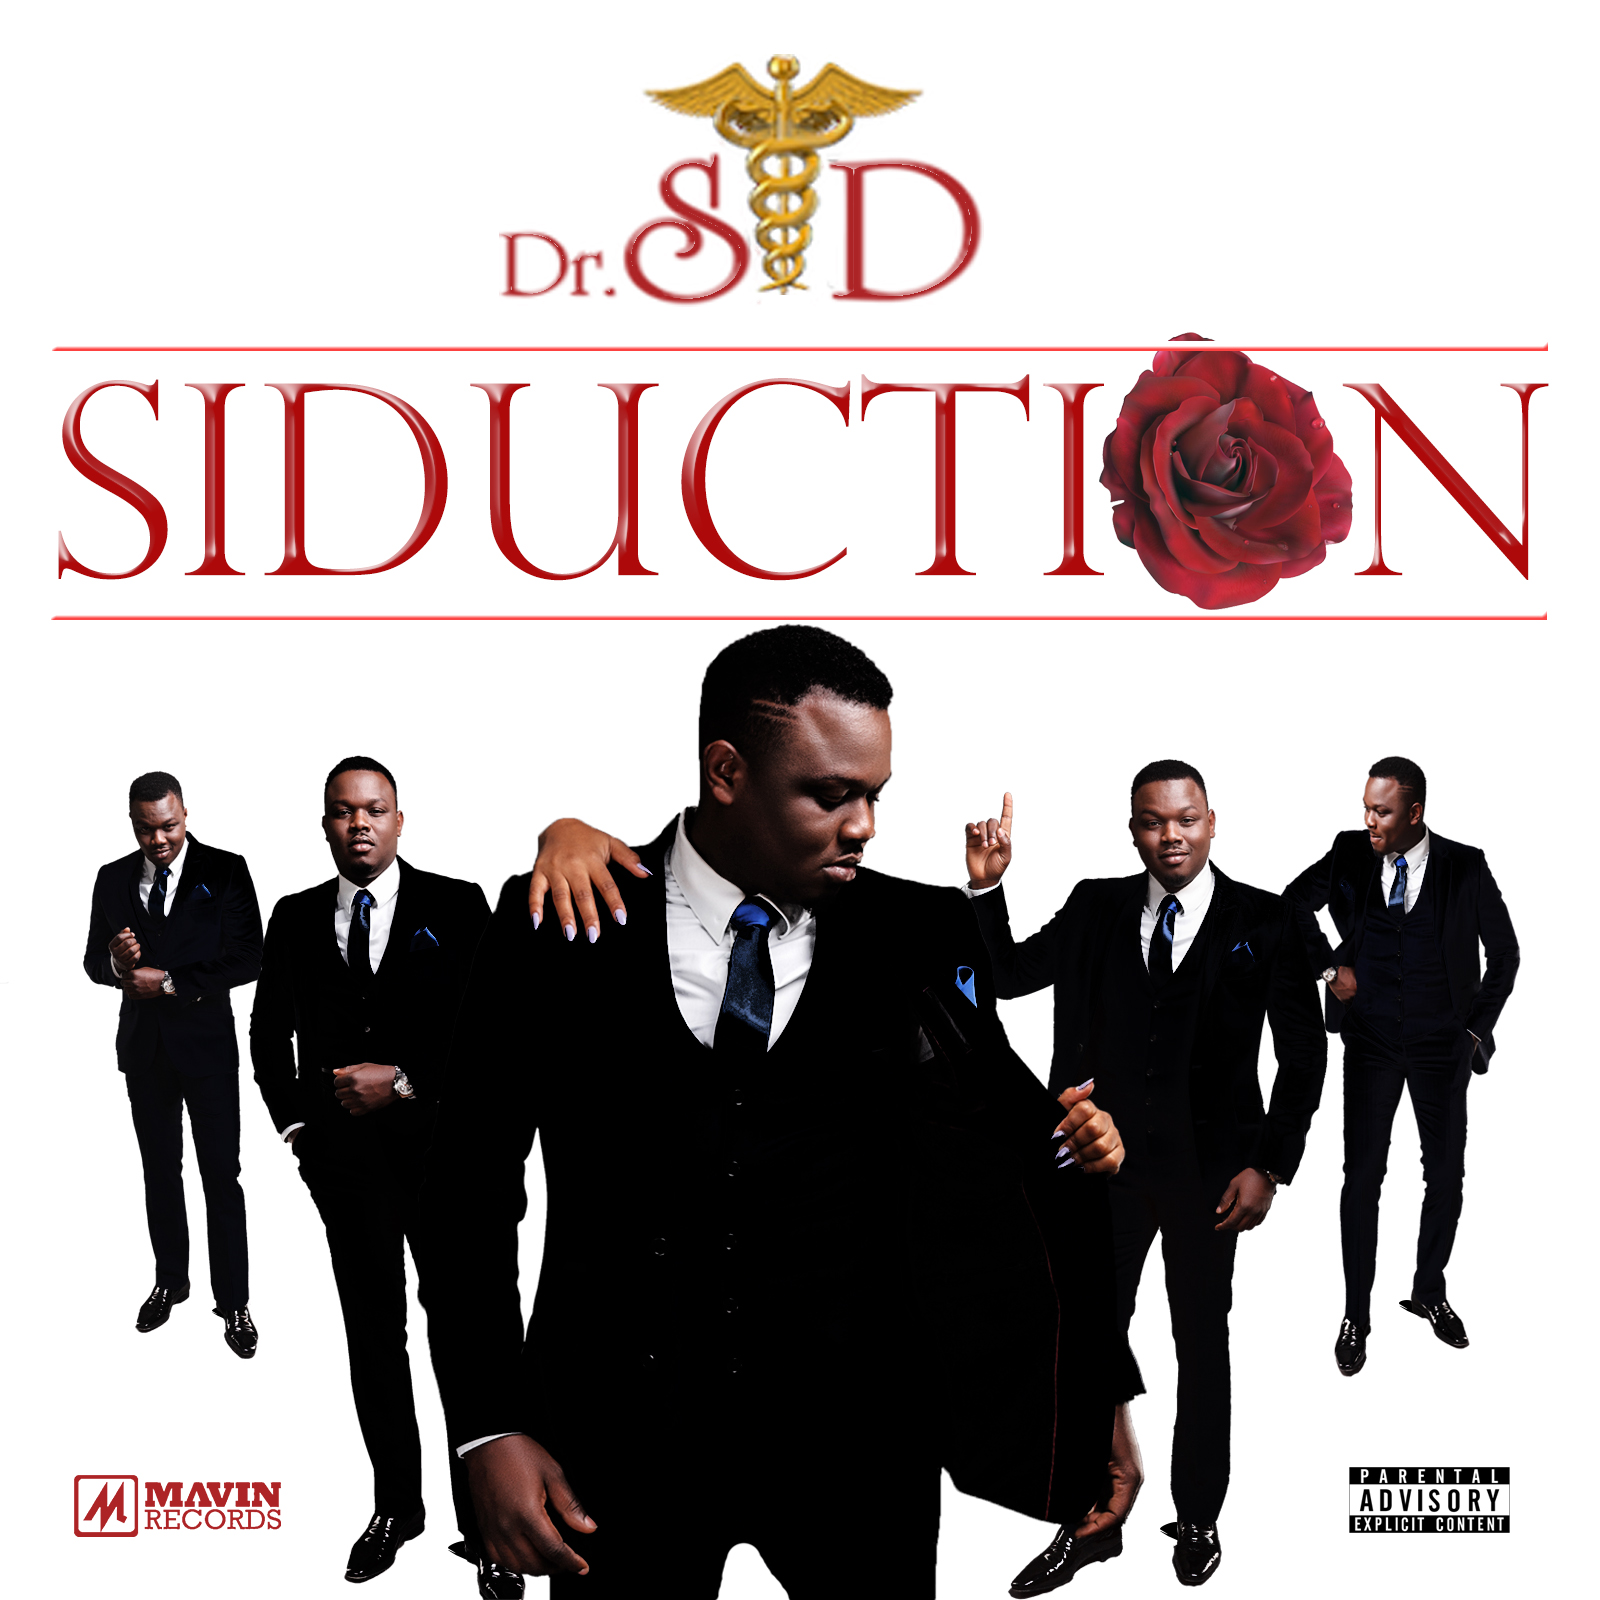 Dr SID SIDUCTION ART